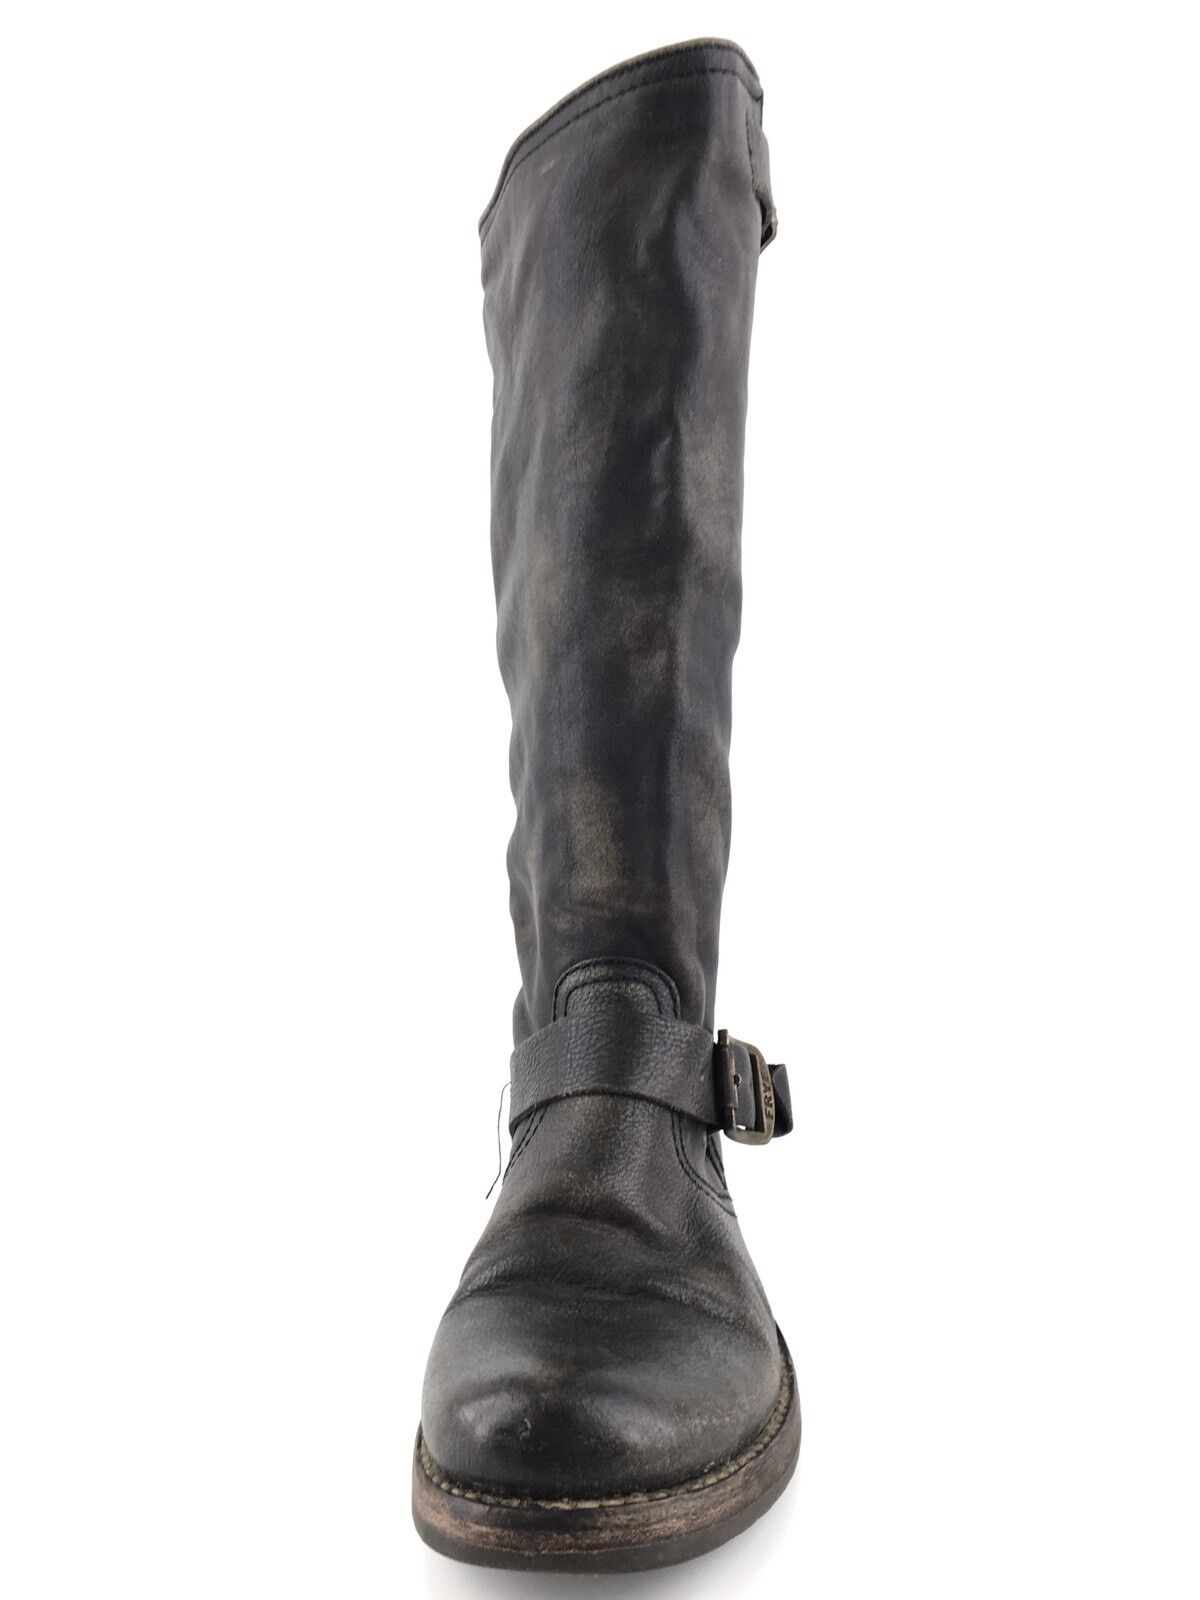 Frye Veronica Slouch Dark Brown Leather Riding Boots Womens Womens Womens Size 6.5 77609  328 5ff8ba